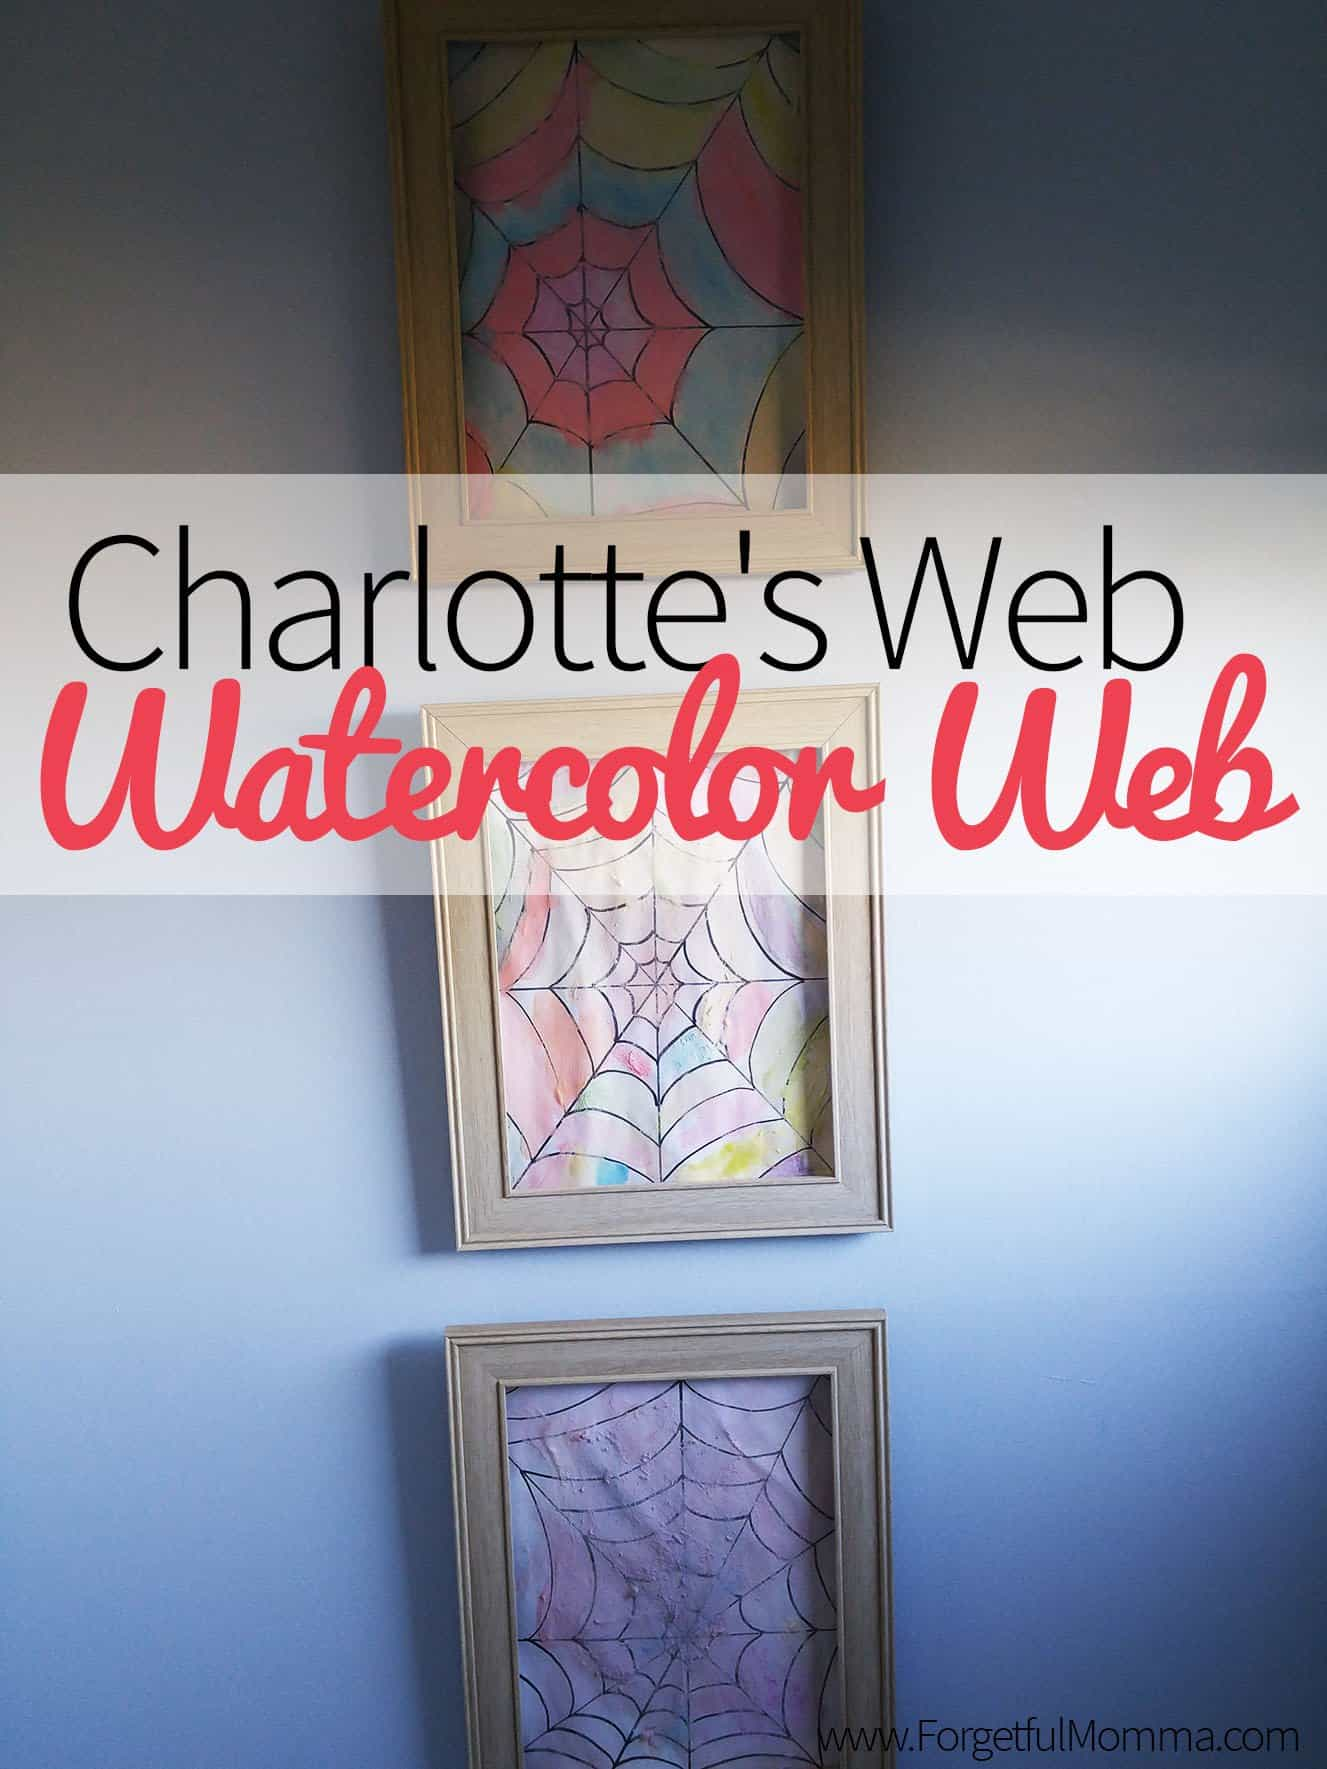 Charlotte's Web - Watercolor Web